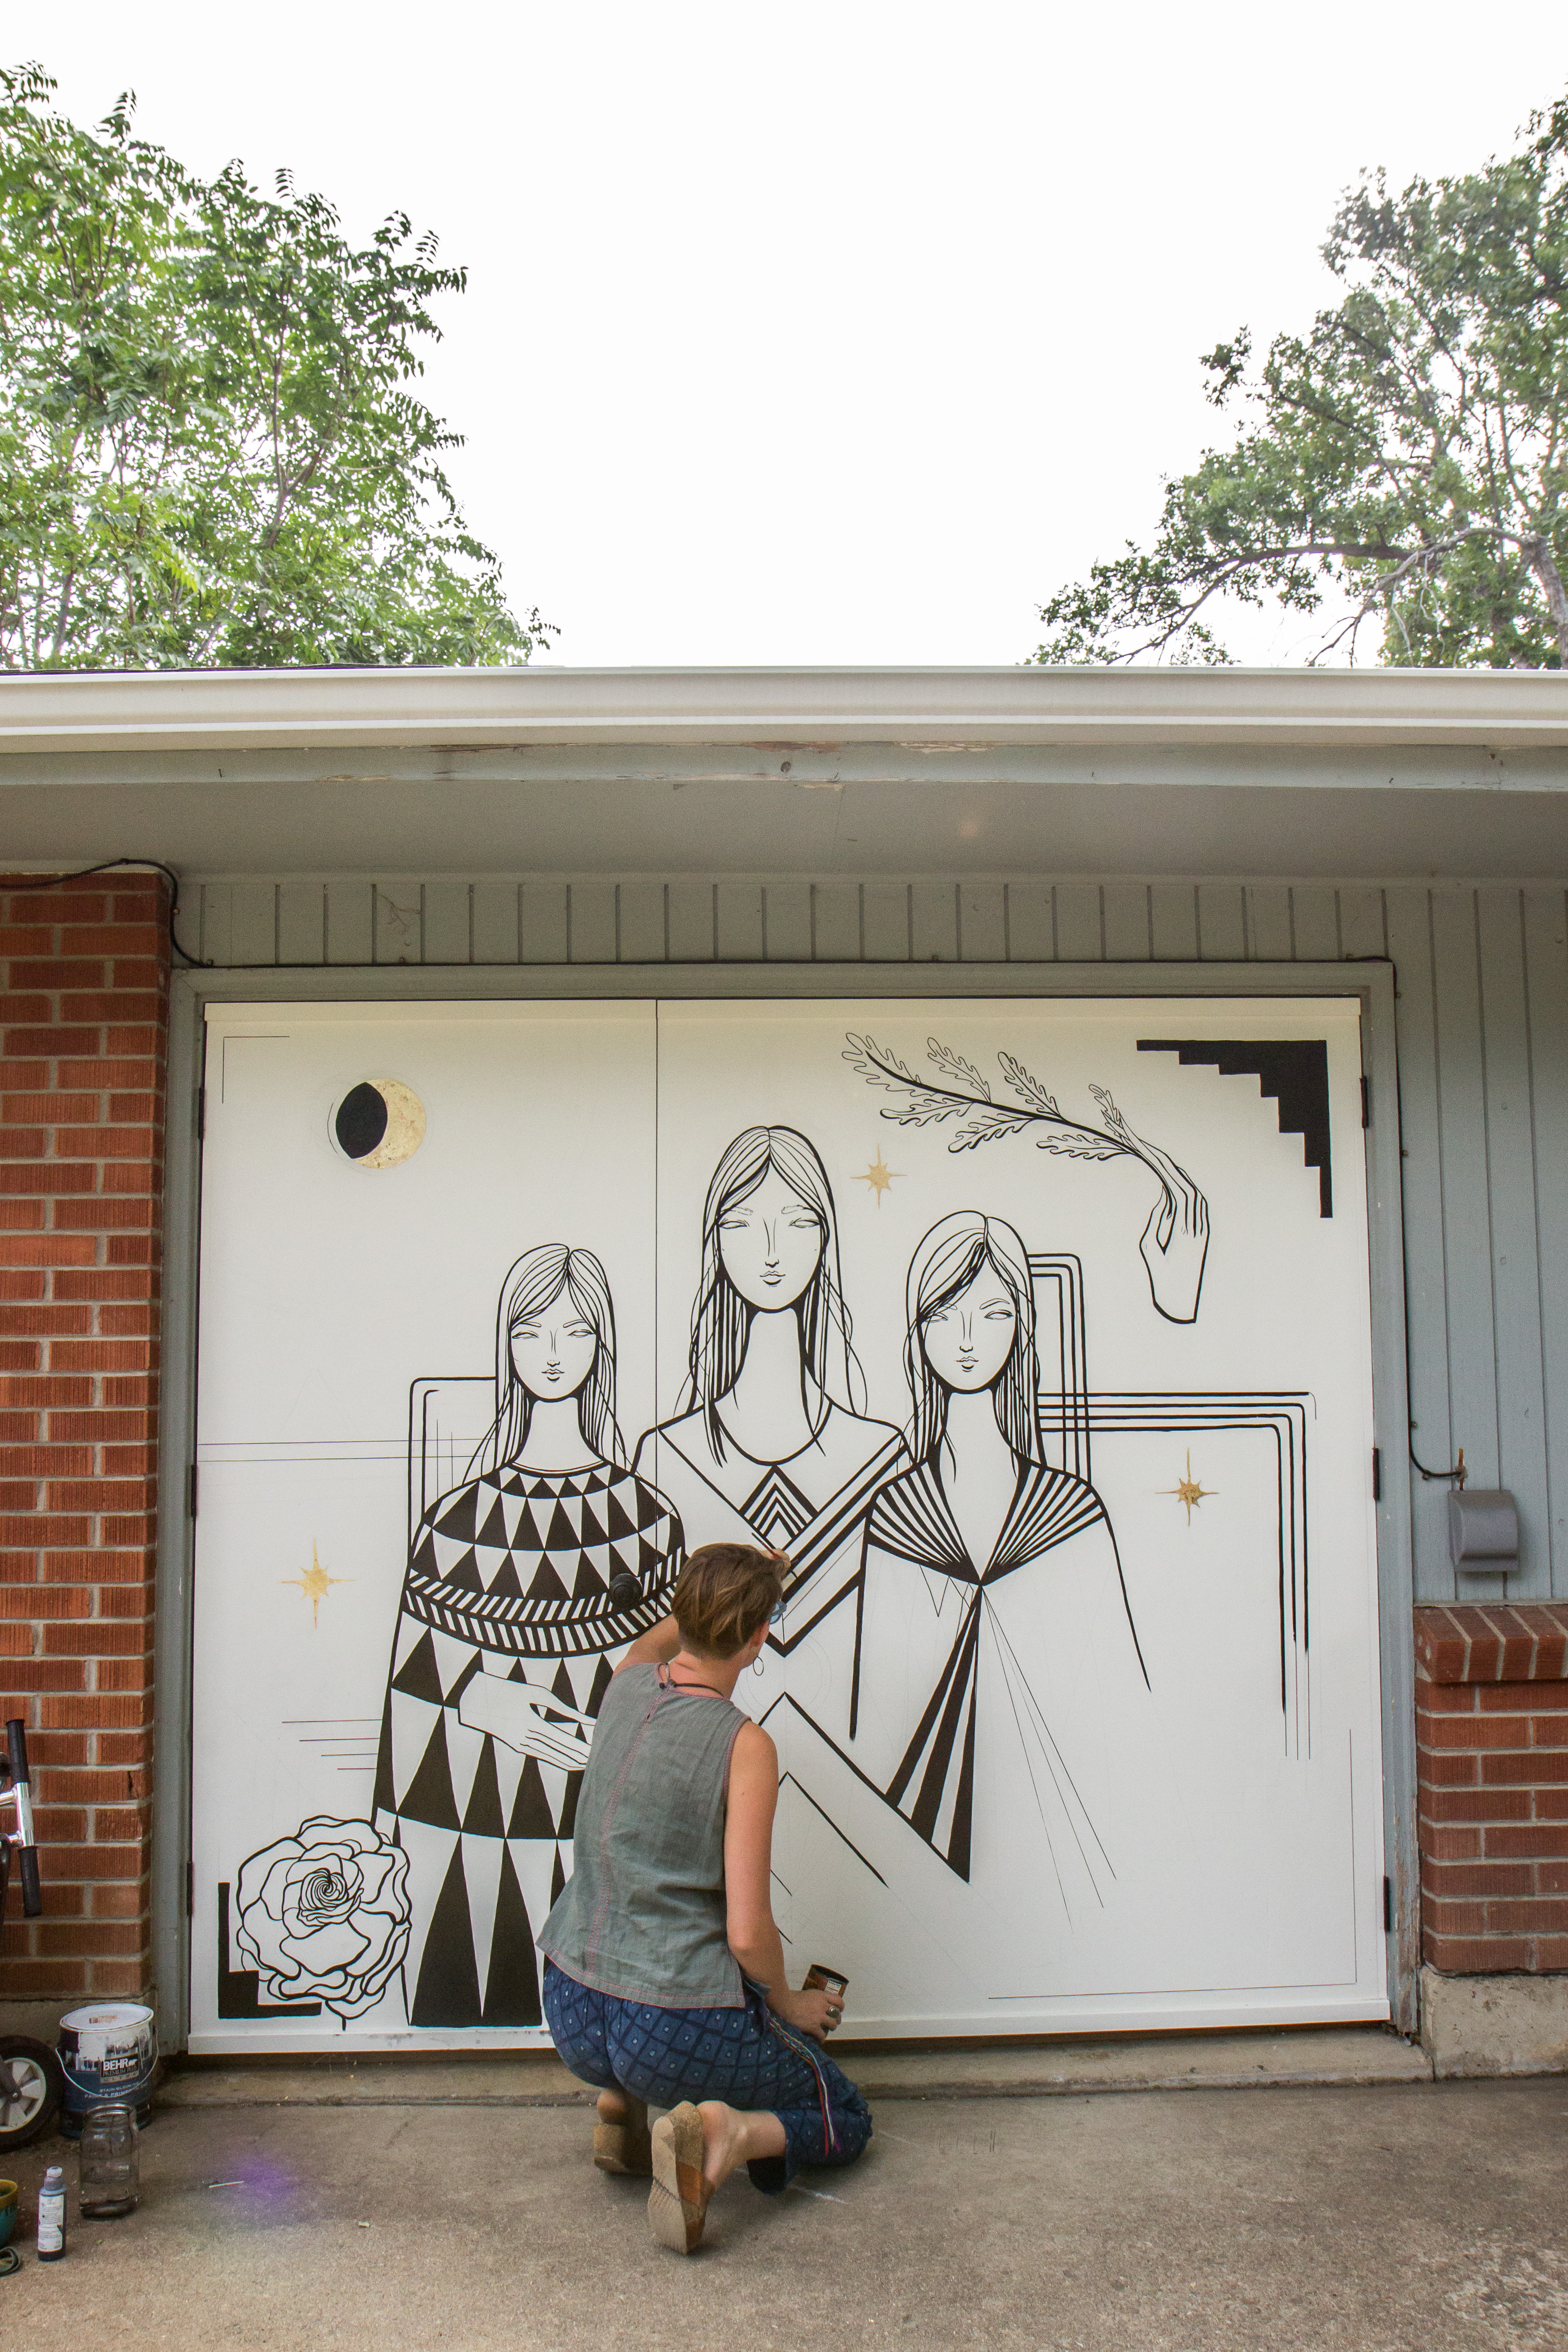 Mural by Lindee Zimmer